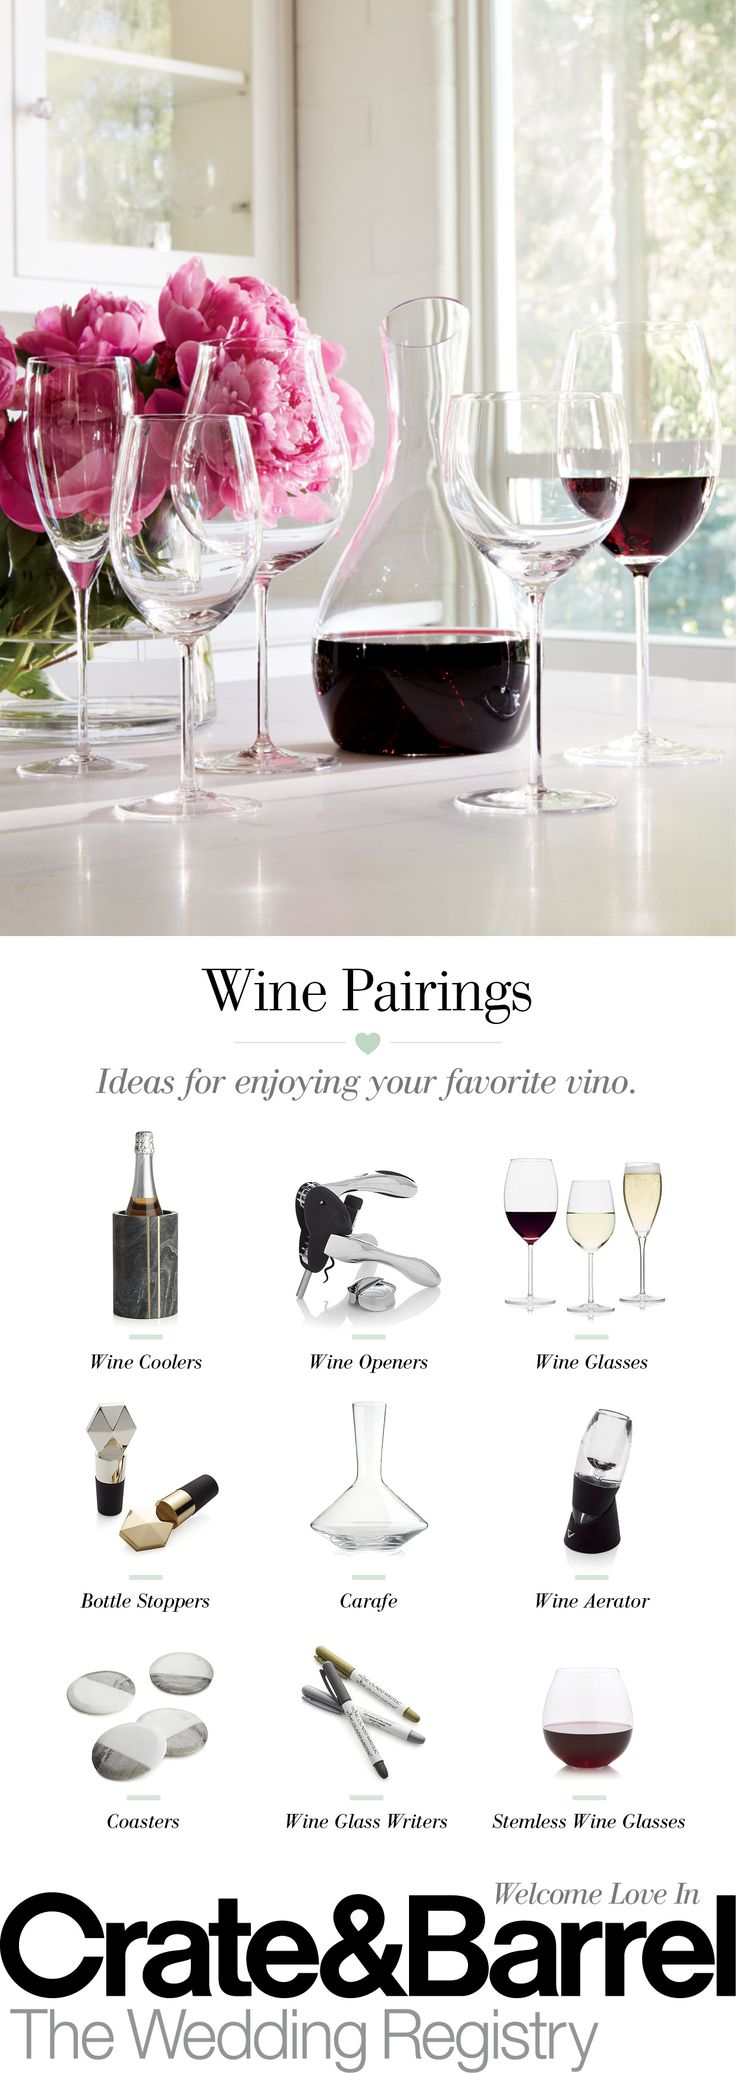 Think of your drinkware as the MVP of your registry. It should be sleek, be comfortable to hold, great to sip from and a breeze to wash. Make sure you have as many red and white wine glasses as you have dinnerware place settings, plus four more in case of accidents. Create a registry today.